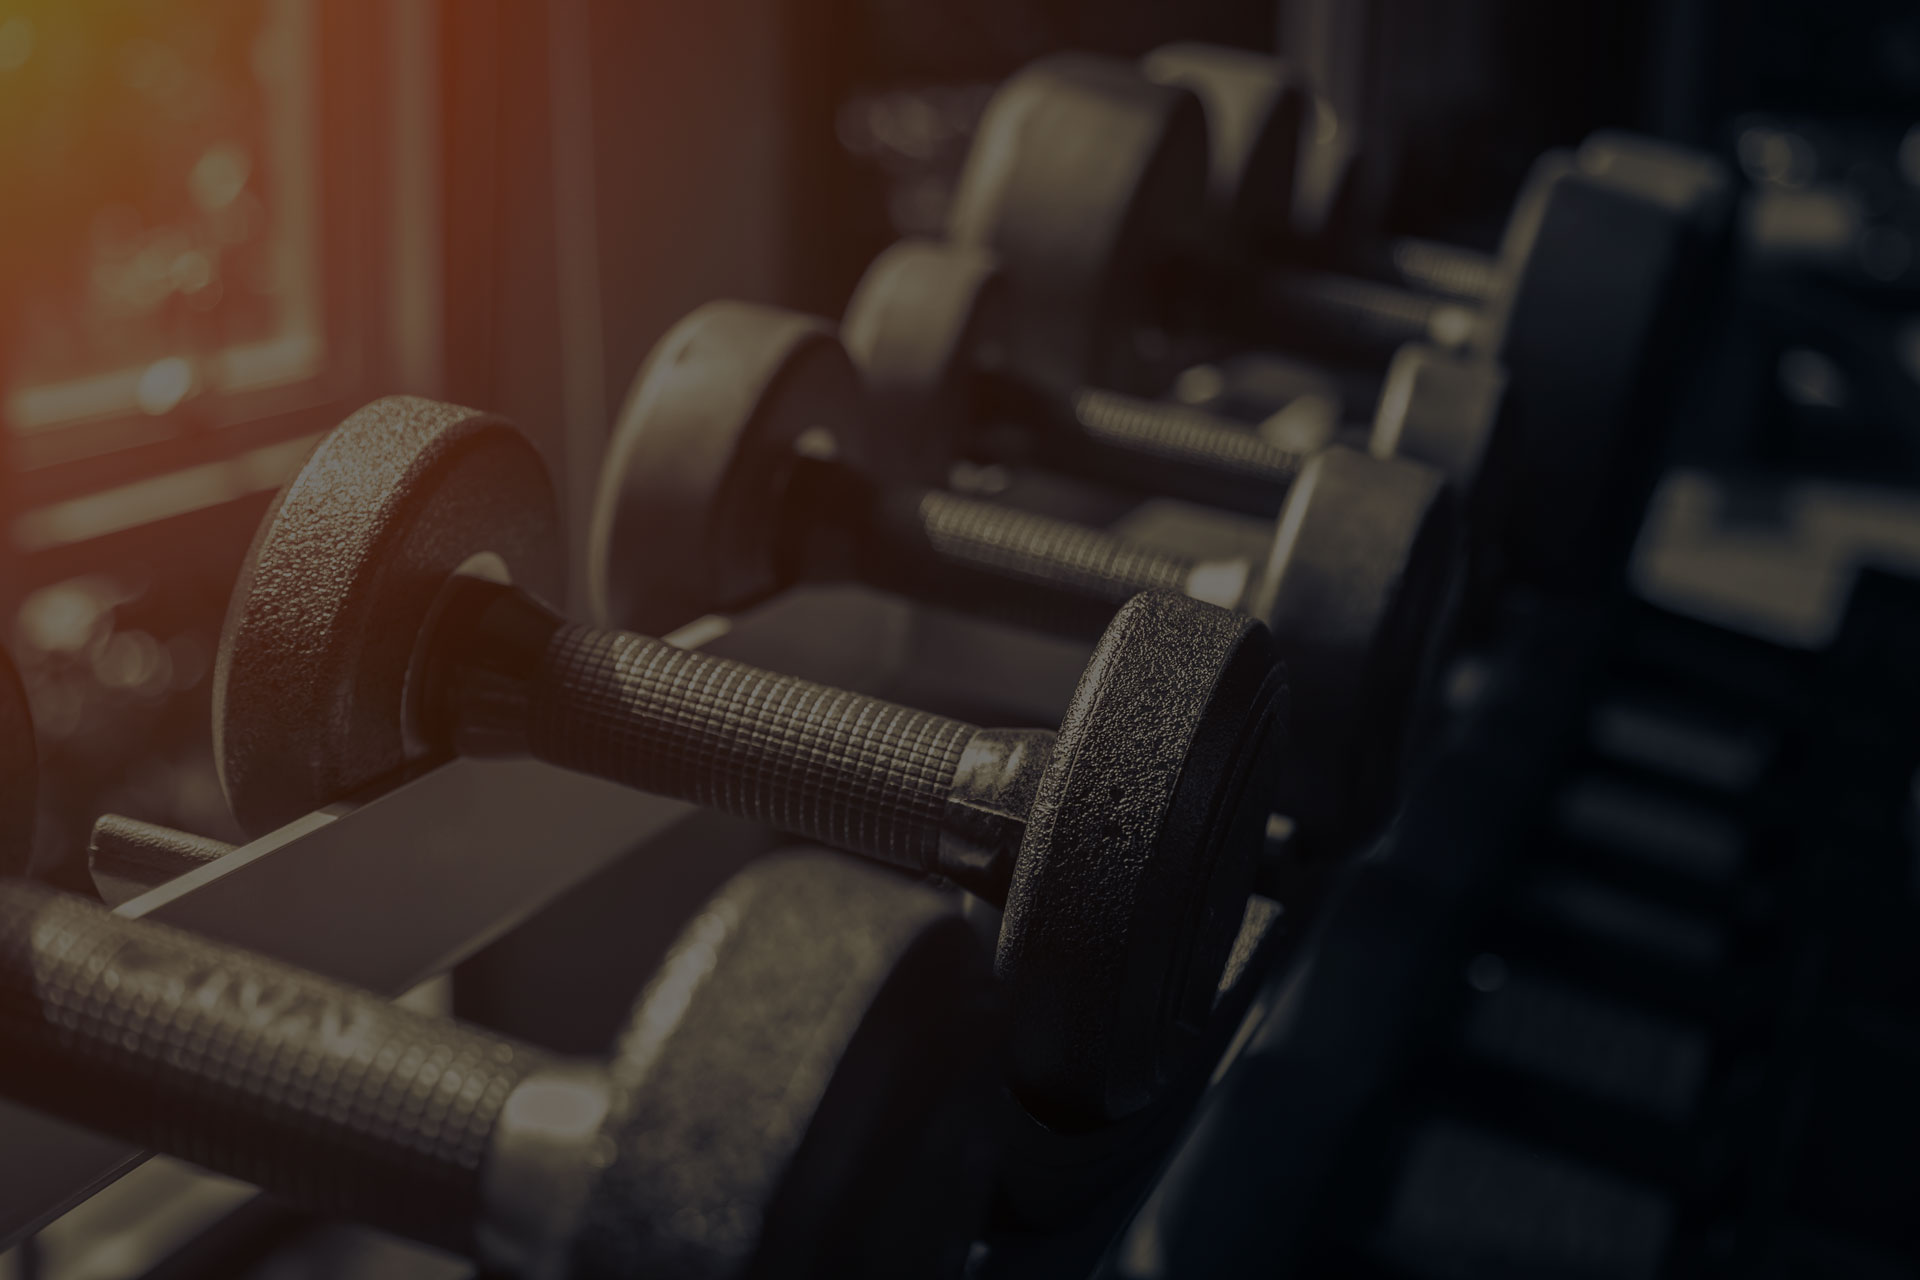 Rows of dumbbells in the gym with hign contrast and monochrome color tone - Image